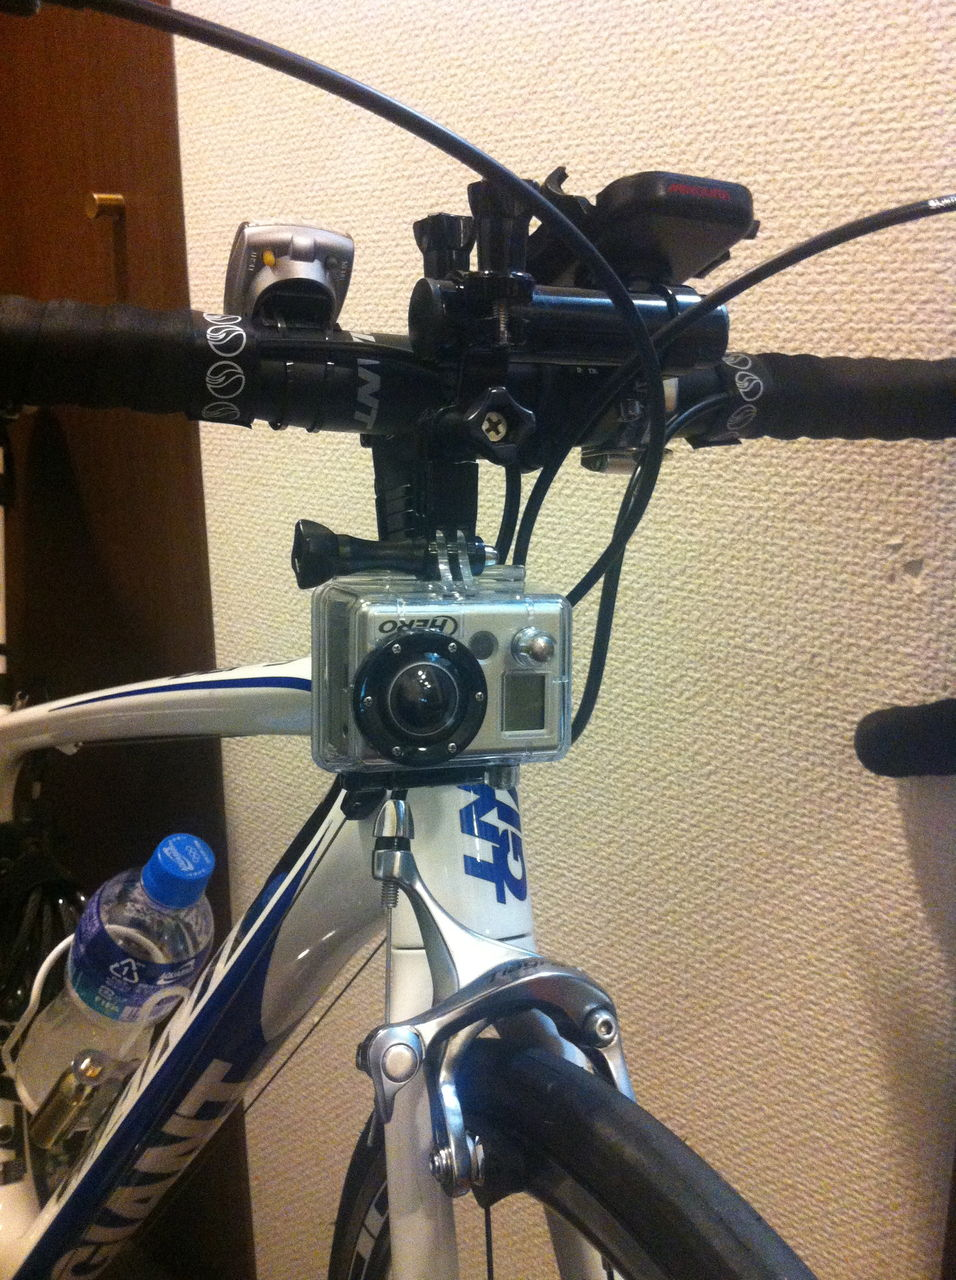 Goproを自転車に取り付ける Movie For Life Goproとfinal Cut Pro X